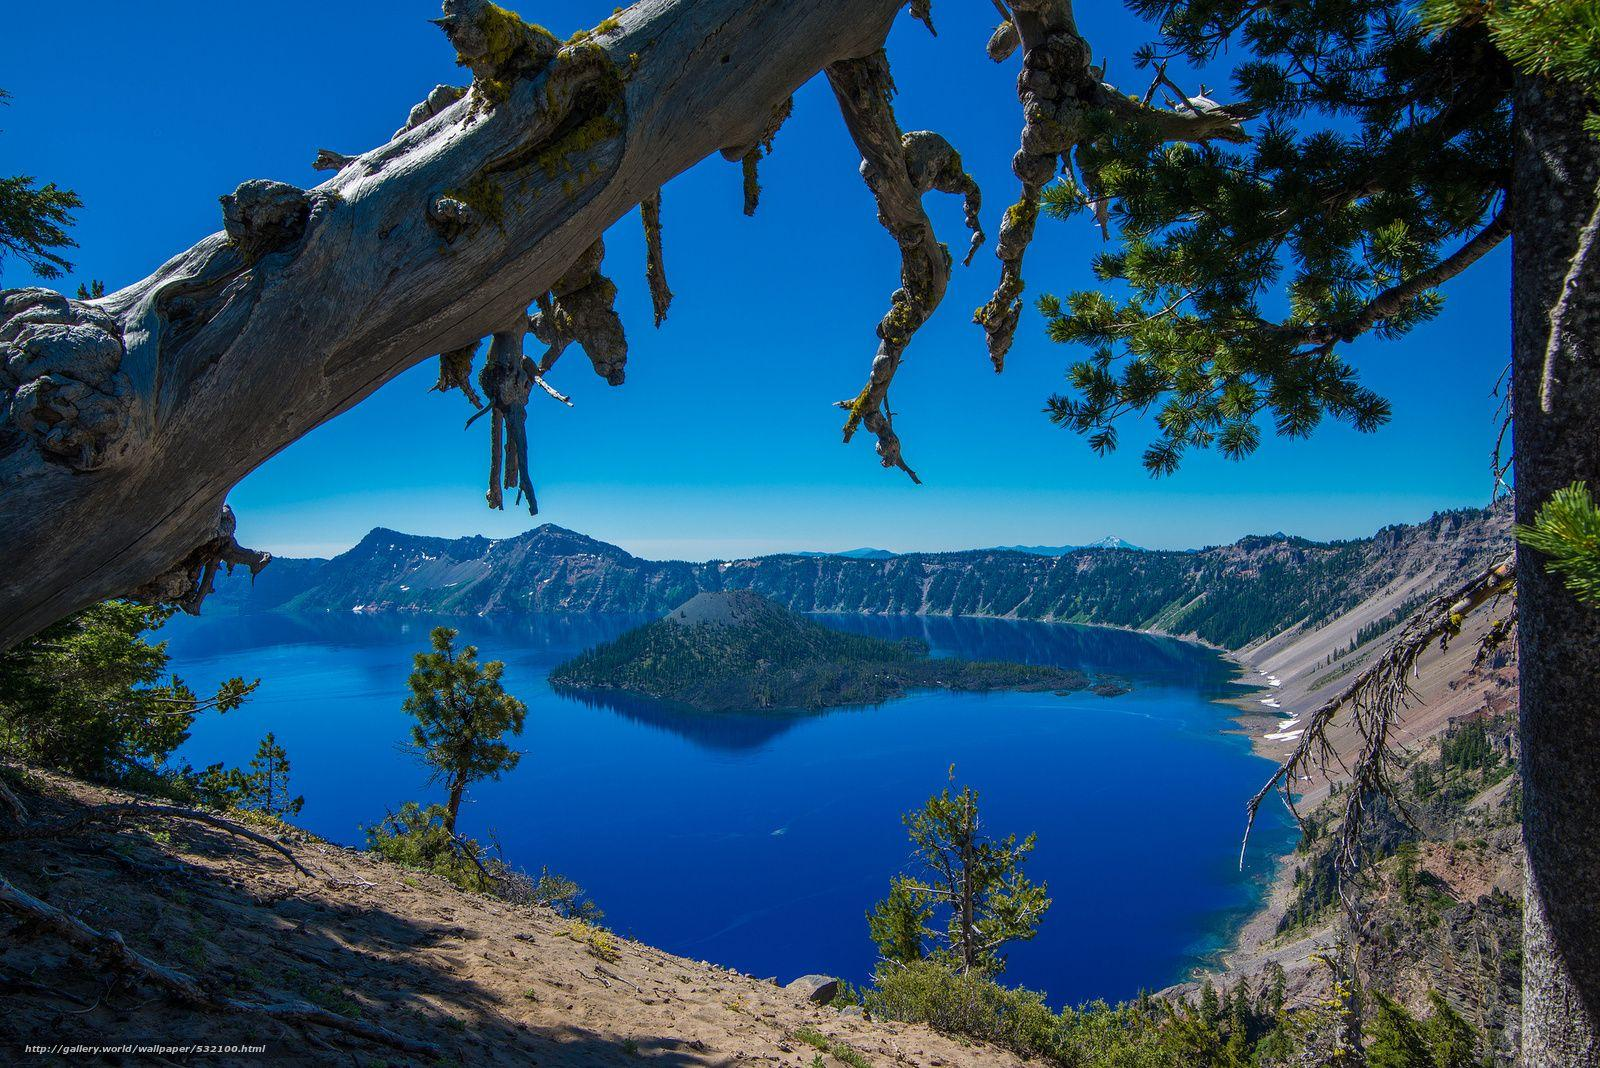 Download wallpaper crater lake, crater lake national park, oregon ...